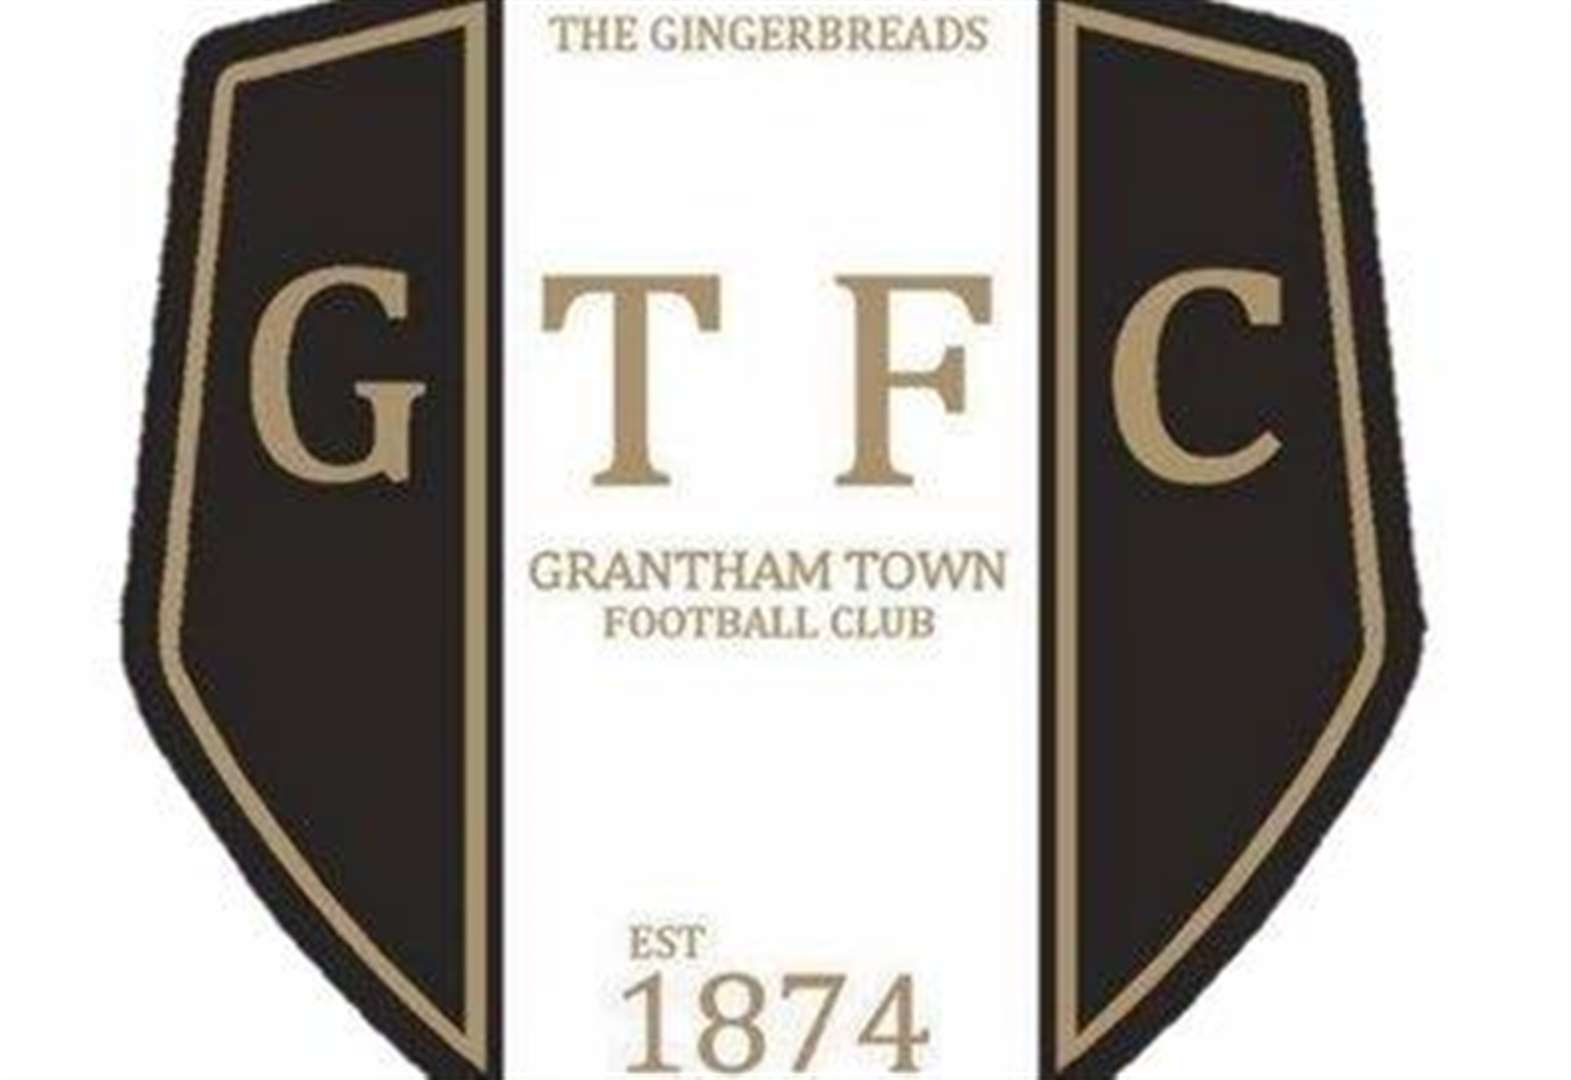 Did you win in this week's Gingerbreads lotto?